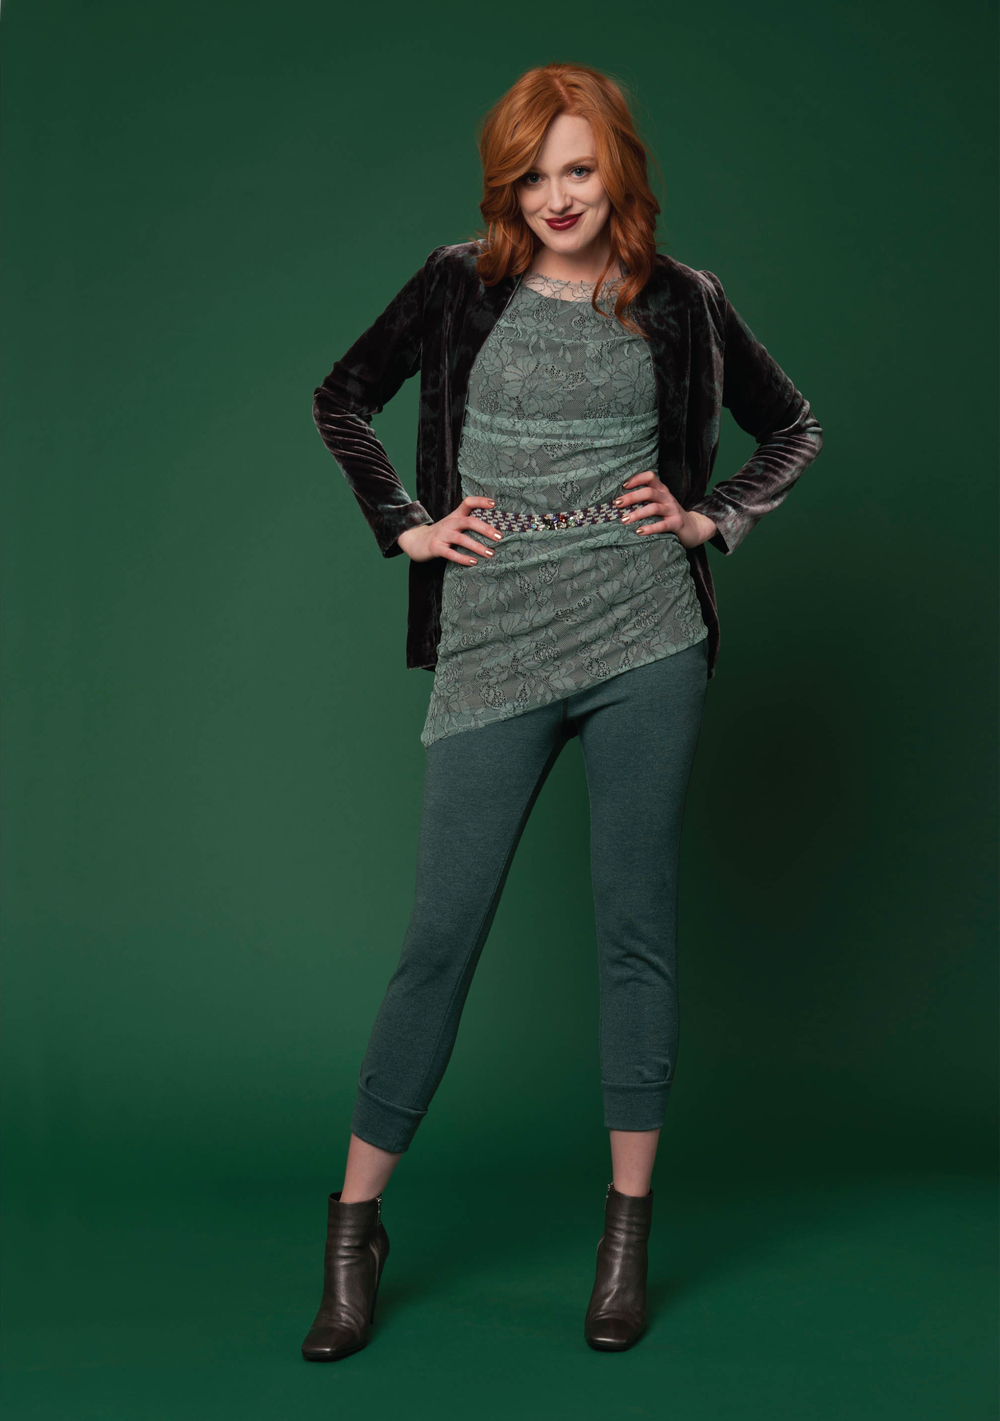 printed silk velvet cardigan  smoke/mint   grecian lace sleeveless top w/ knit lining   soft mint/charcoal   french terry crop sweatpant   ivy heather   elastic braided belt with crystals   mint